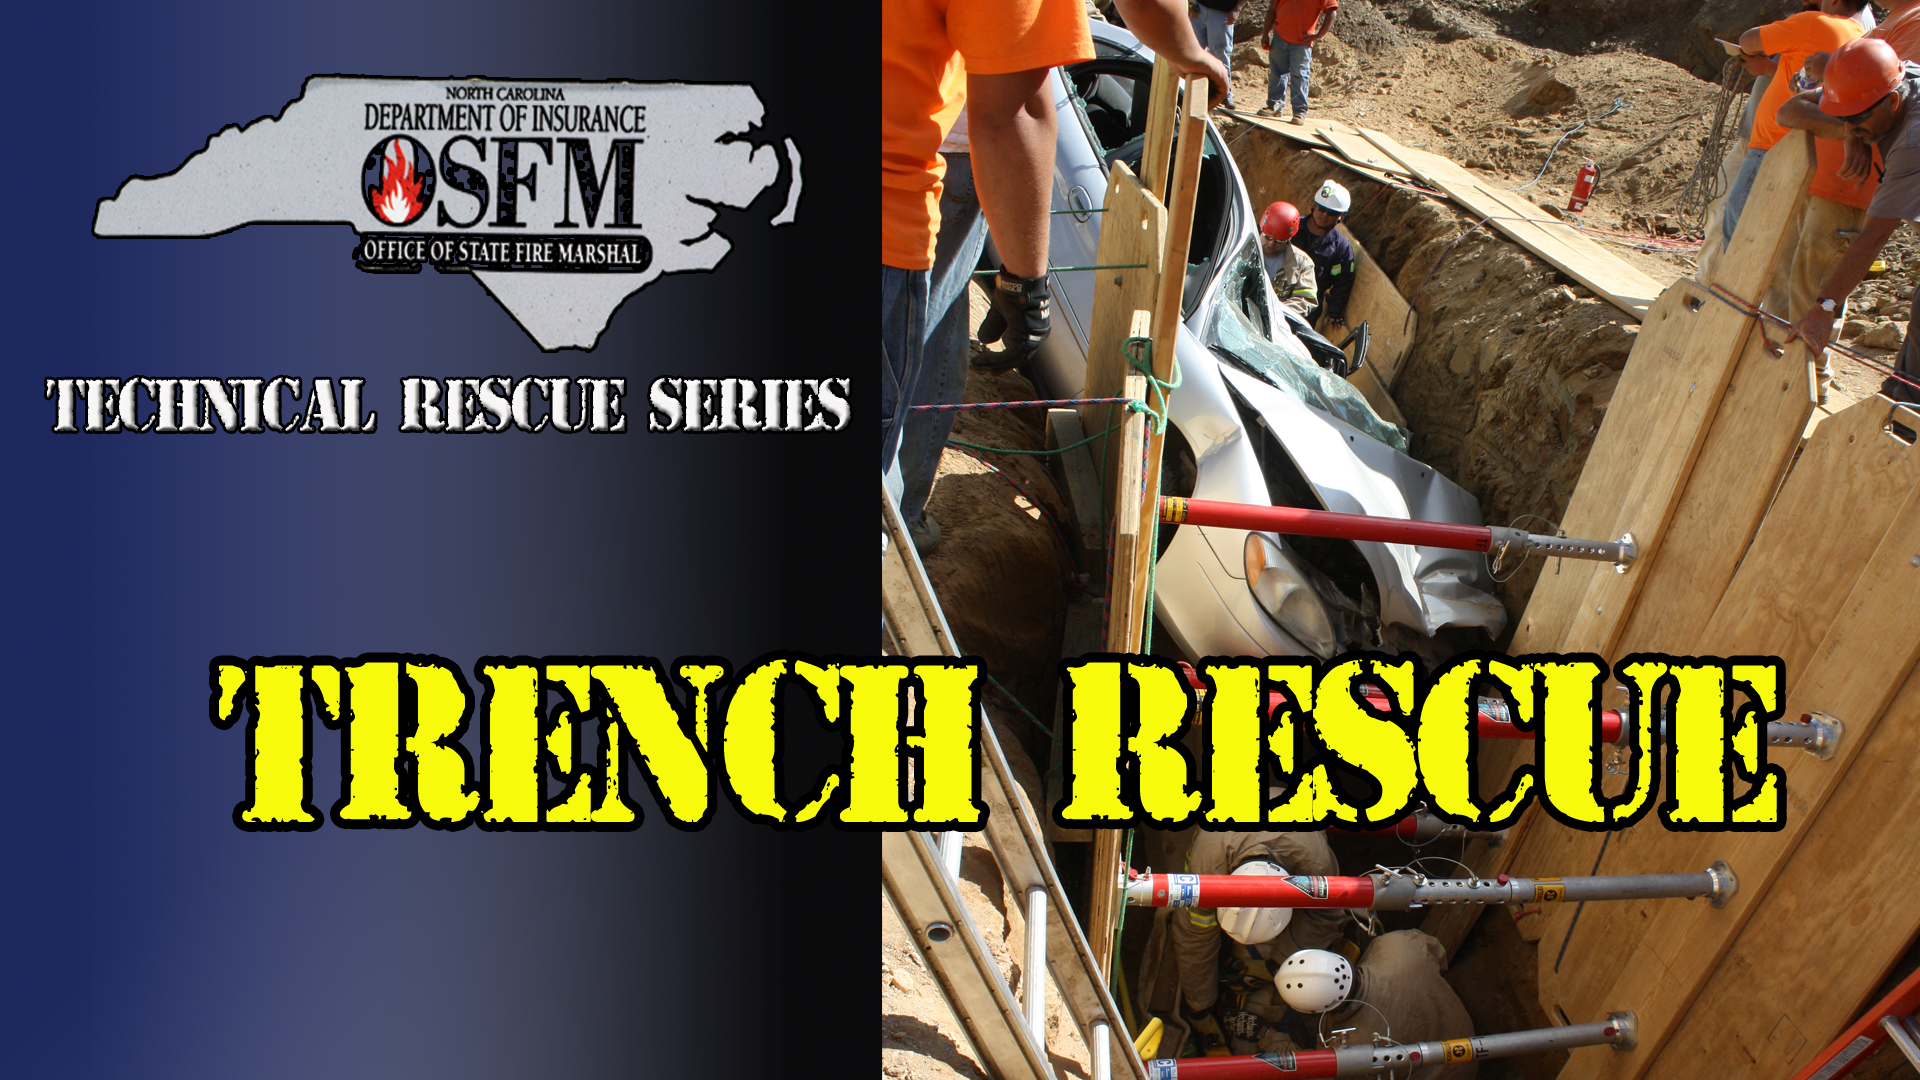 2019 Trench Rescue